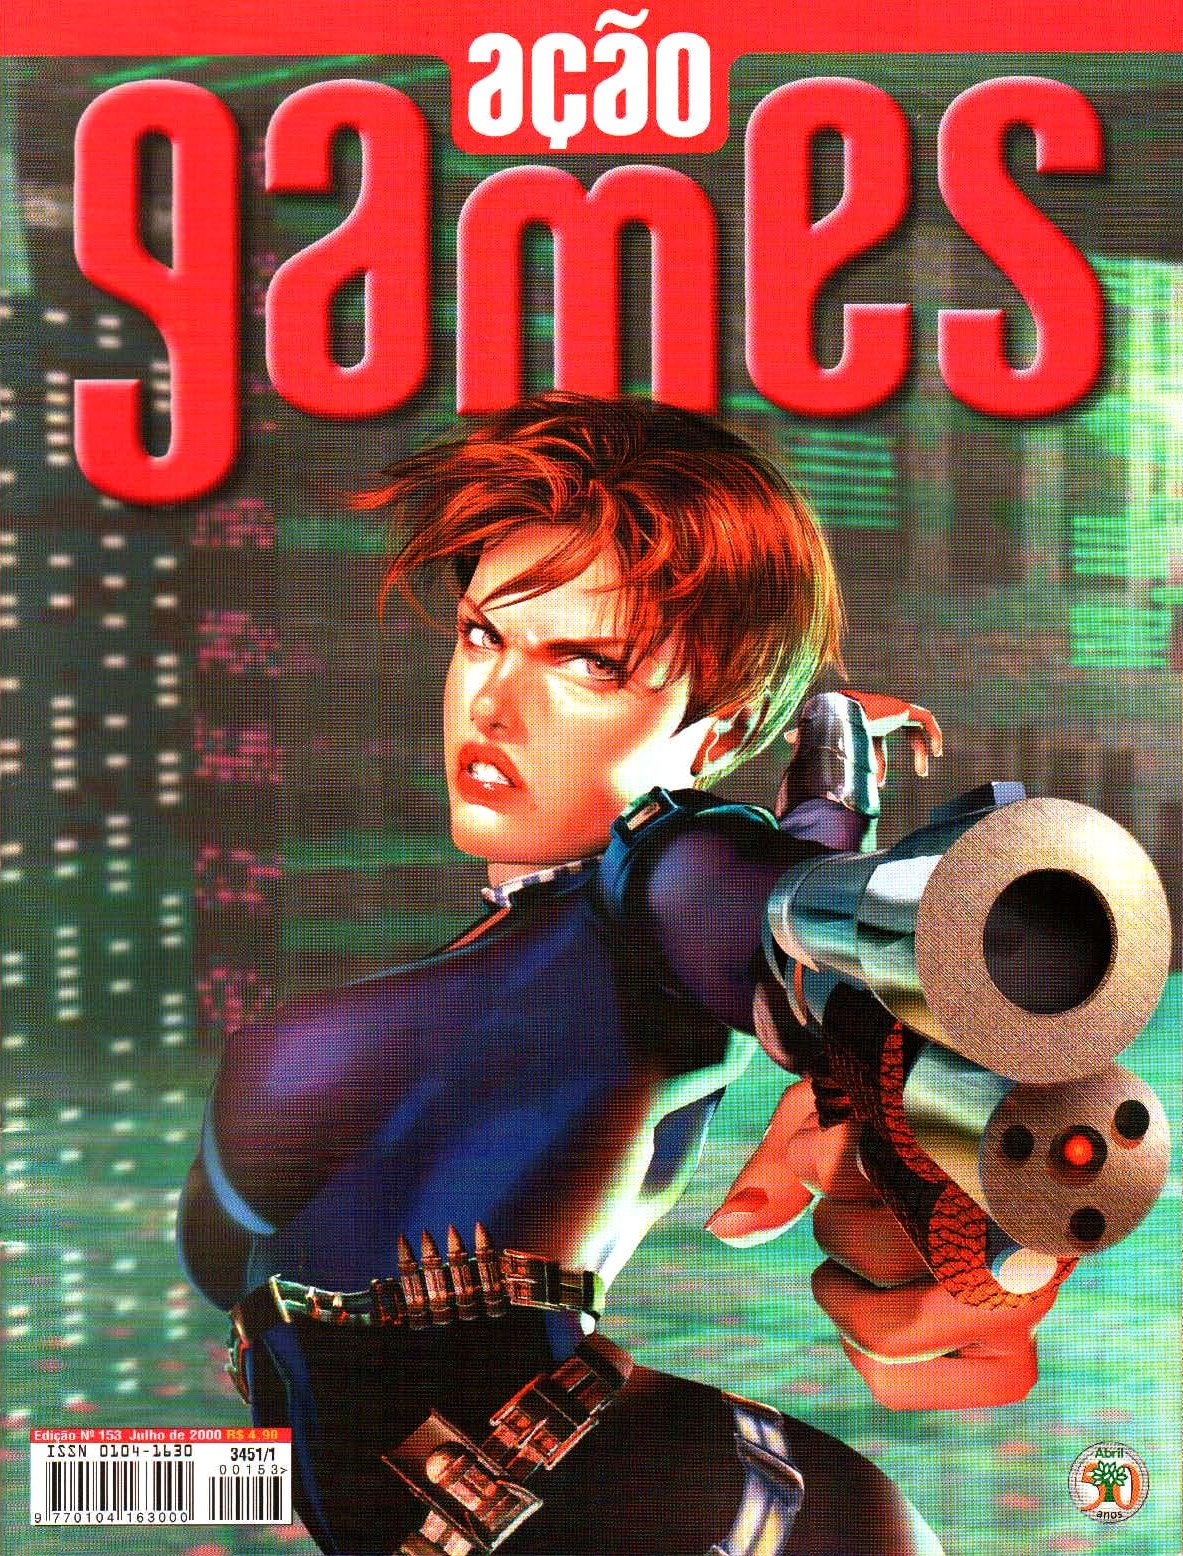 Acao Games Issue 153 (July 2000)